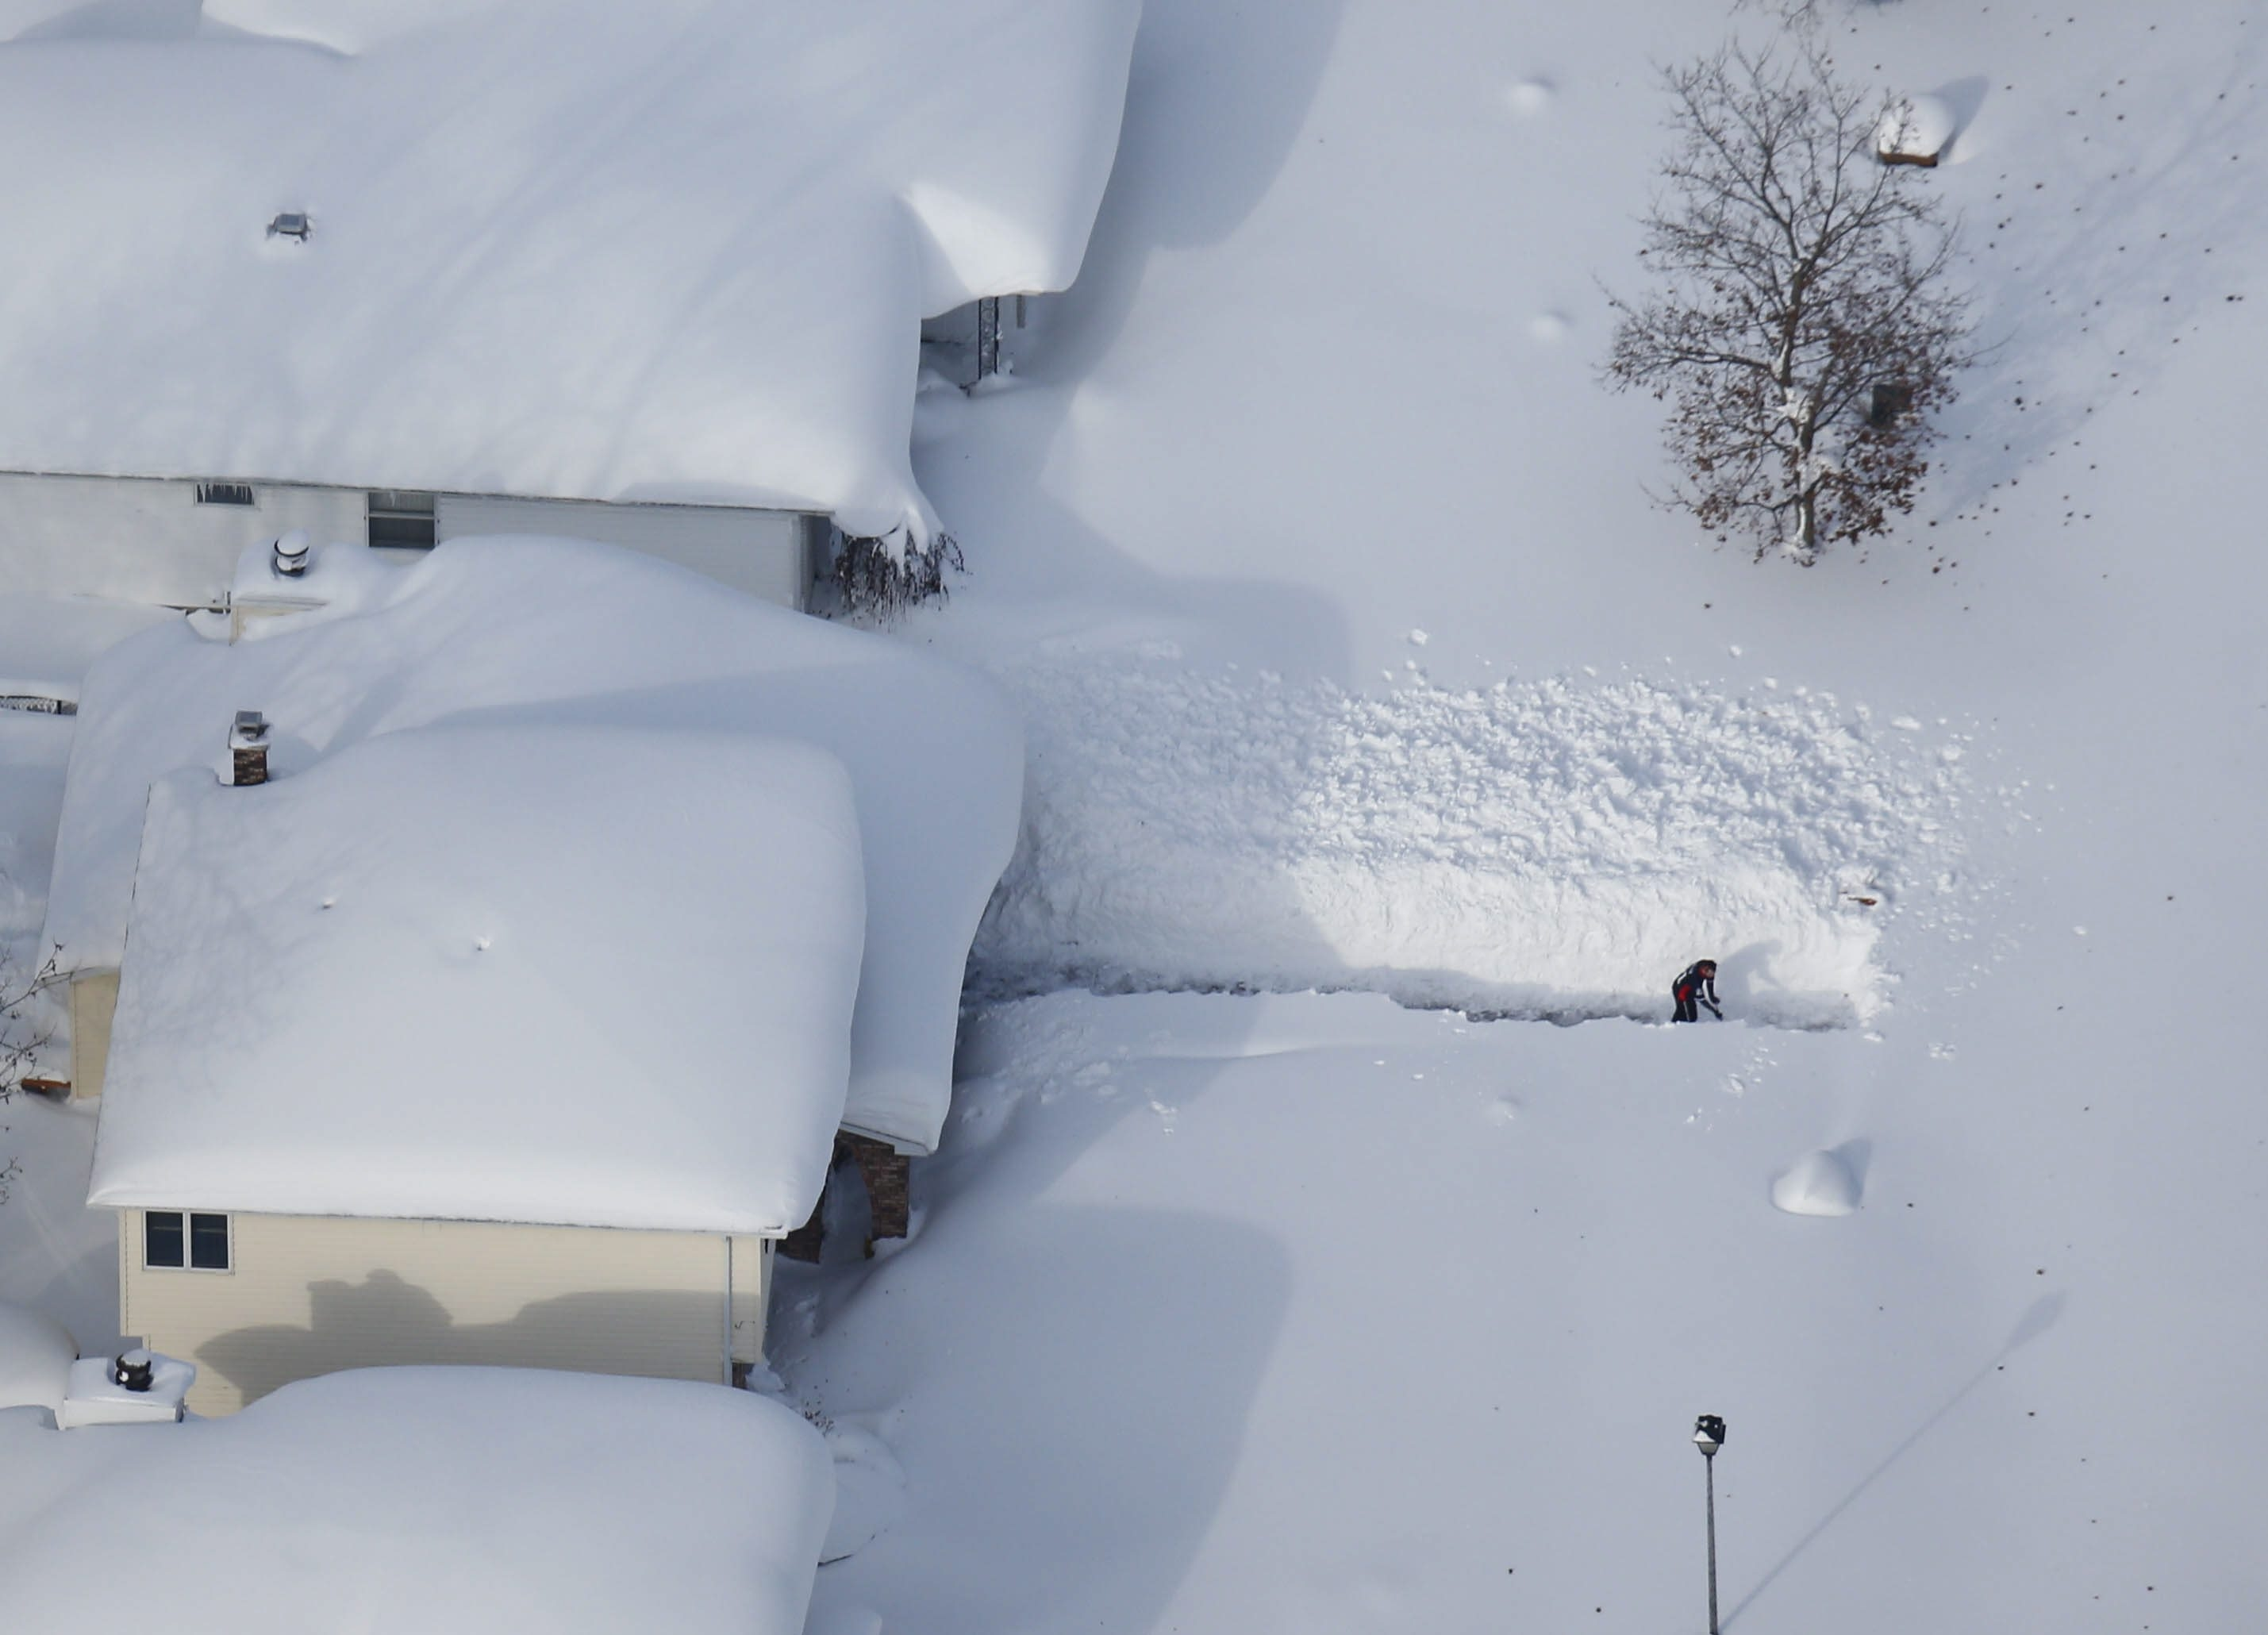 A resident of Depew clears a narrow path from his snow-engulfed house to his unplowed street during the brief calm between two lake-effect storms Wednesday.